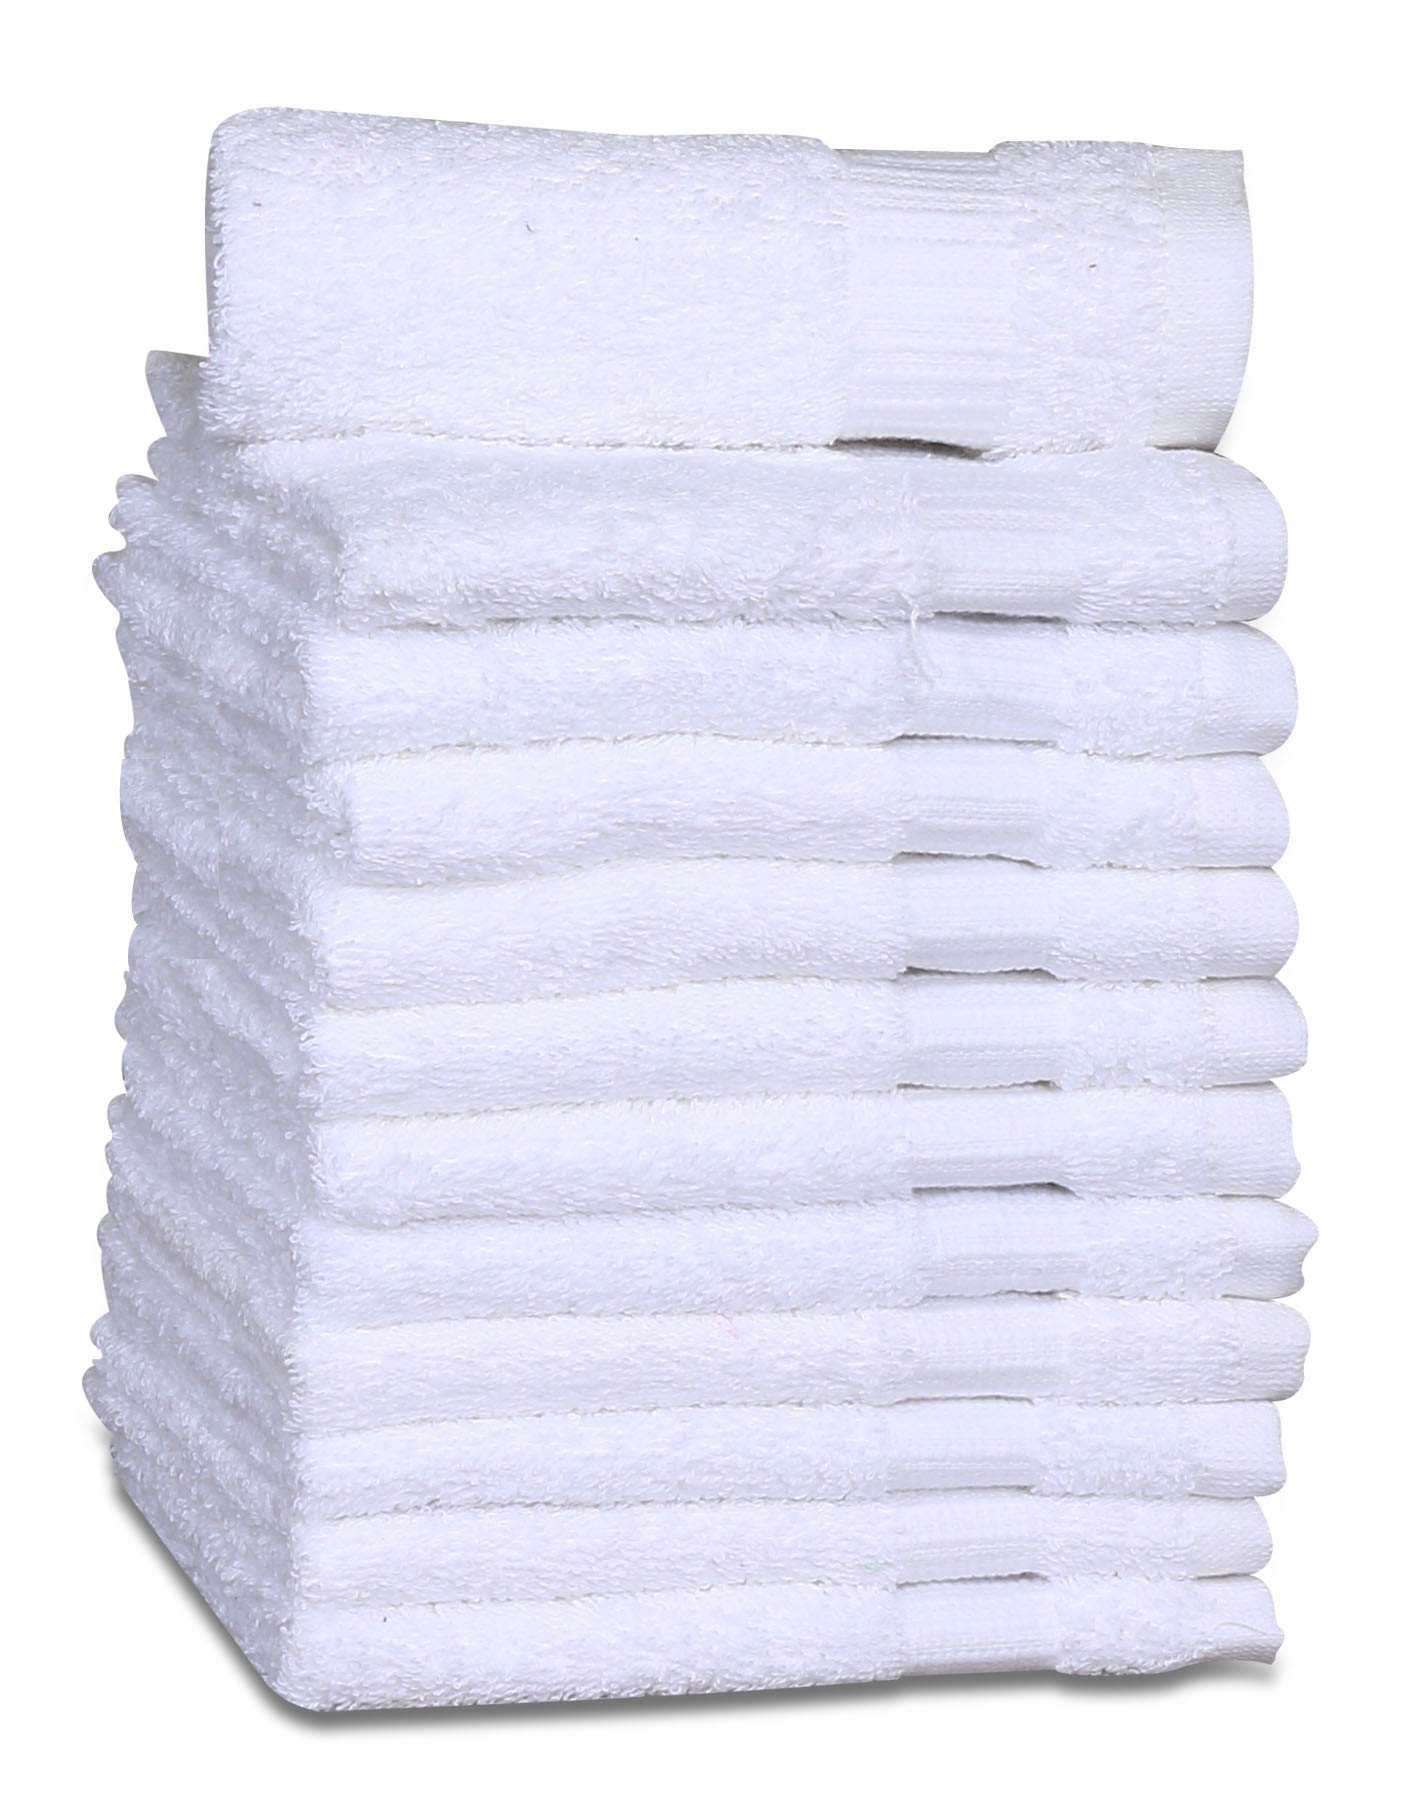 GOLD TEXTILES 5 Dozen Luxury Cotton Washcloths (60-Pack,Bright White,13x13 Inches) - Easy Care,Thick Super Soft Highly Absorbent Quick Dry, Premium Cotton Hand Towels (60, White)